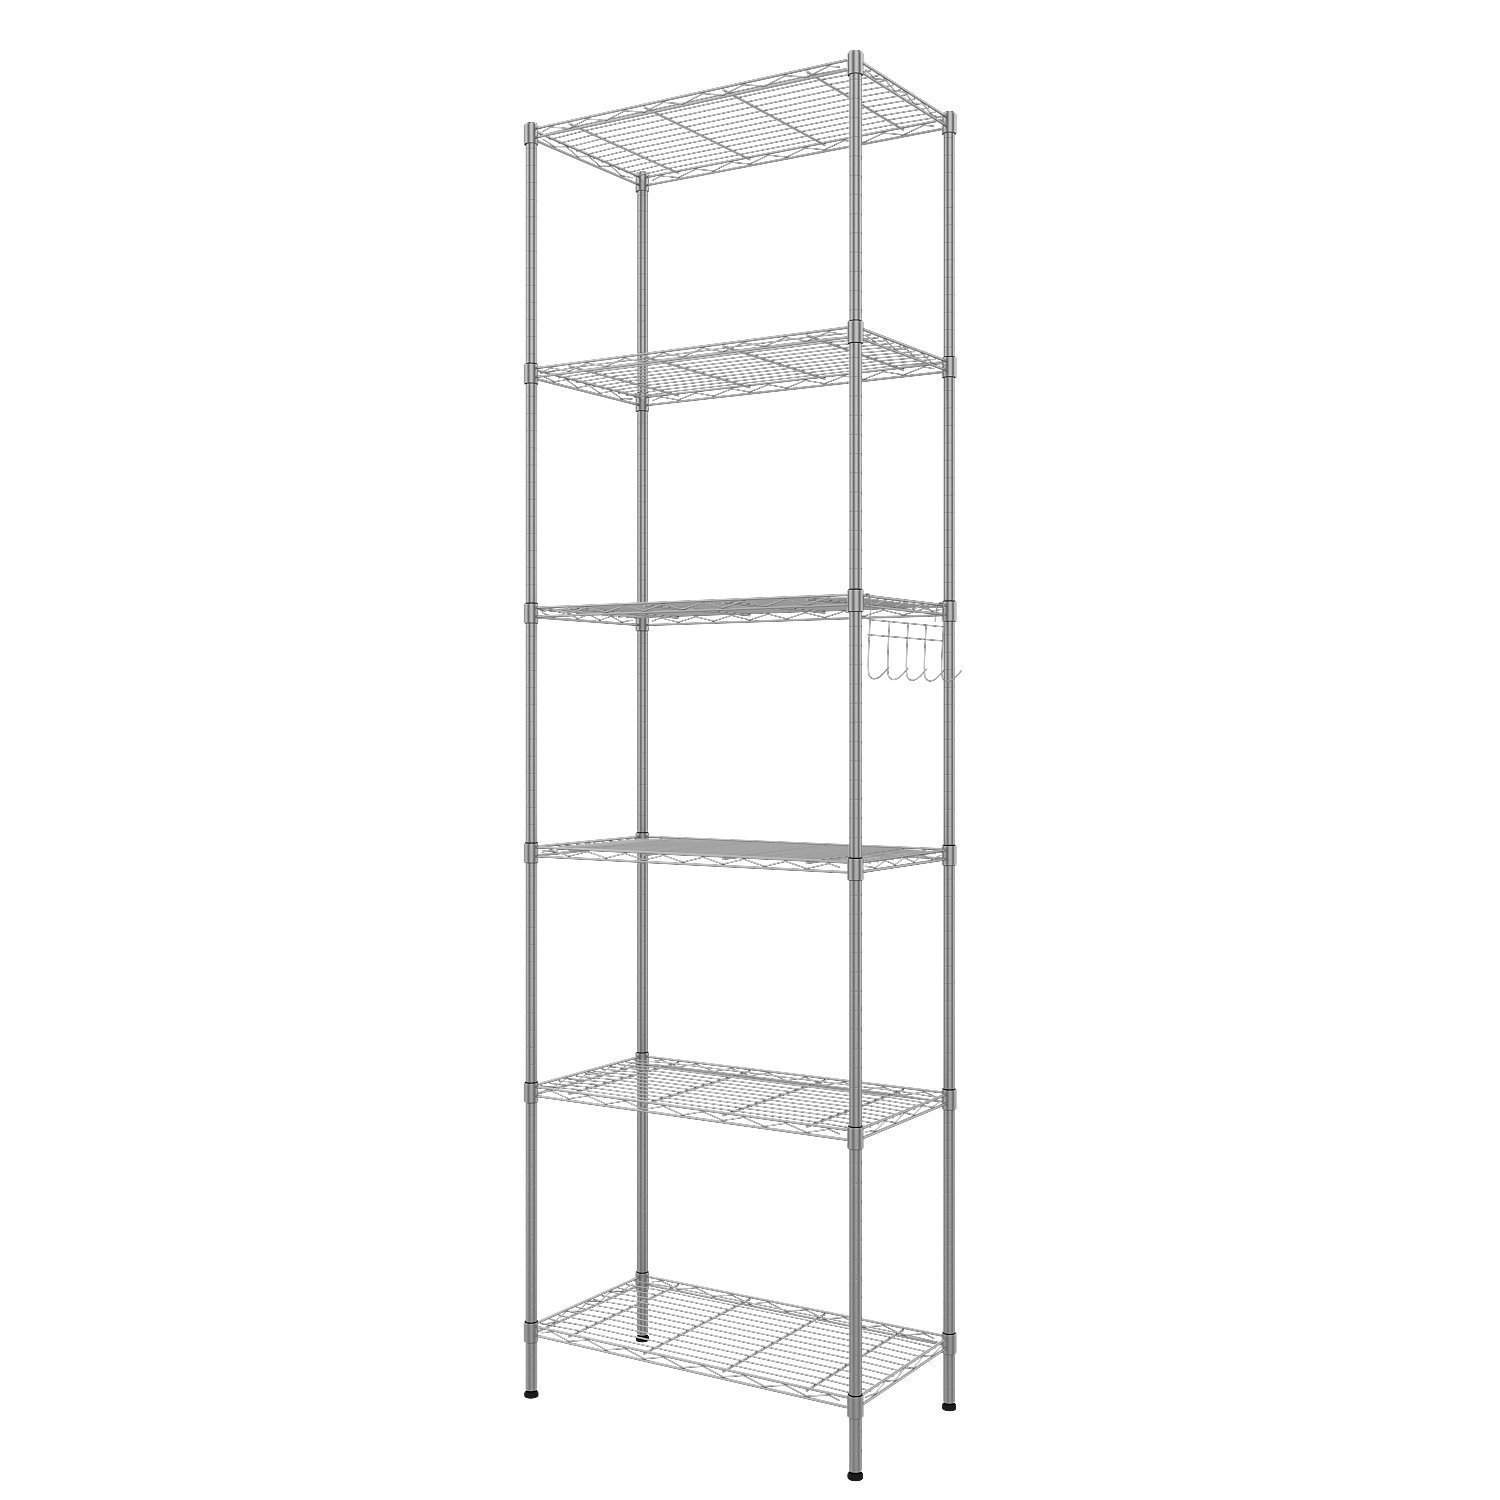 Cheap Free Standing Metal Shelving Find Free Standing